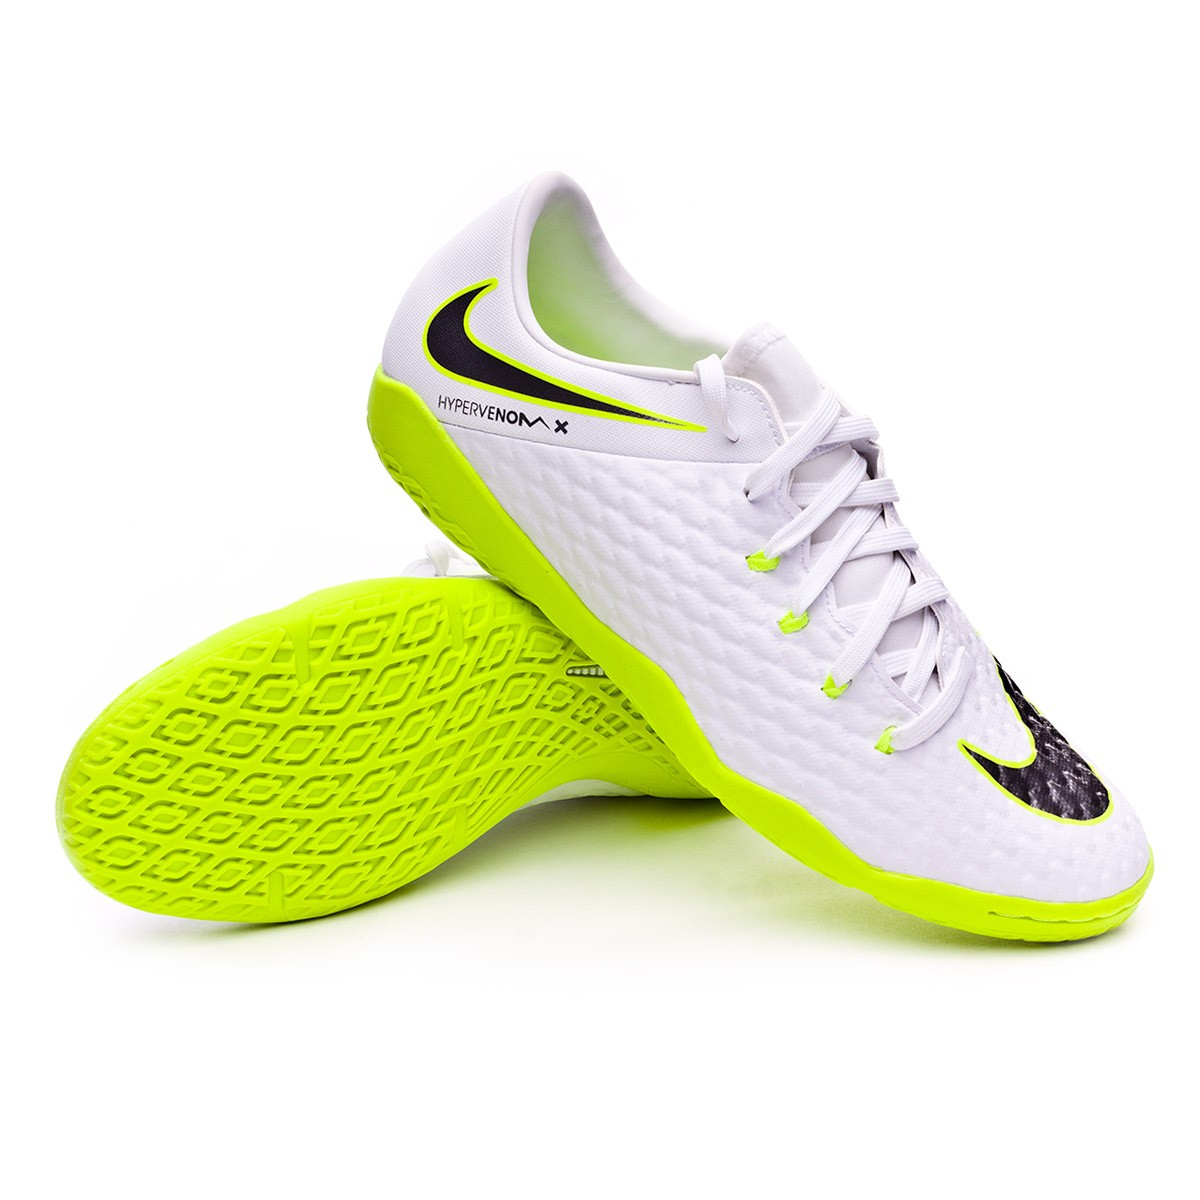 huge selection of 80b94 eed9d Zapatilla Hypervenom PhantomX III Academy IC White-Metallic cool  grey-Volt-Metallic cool g